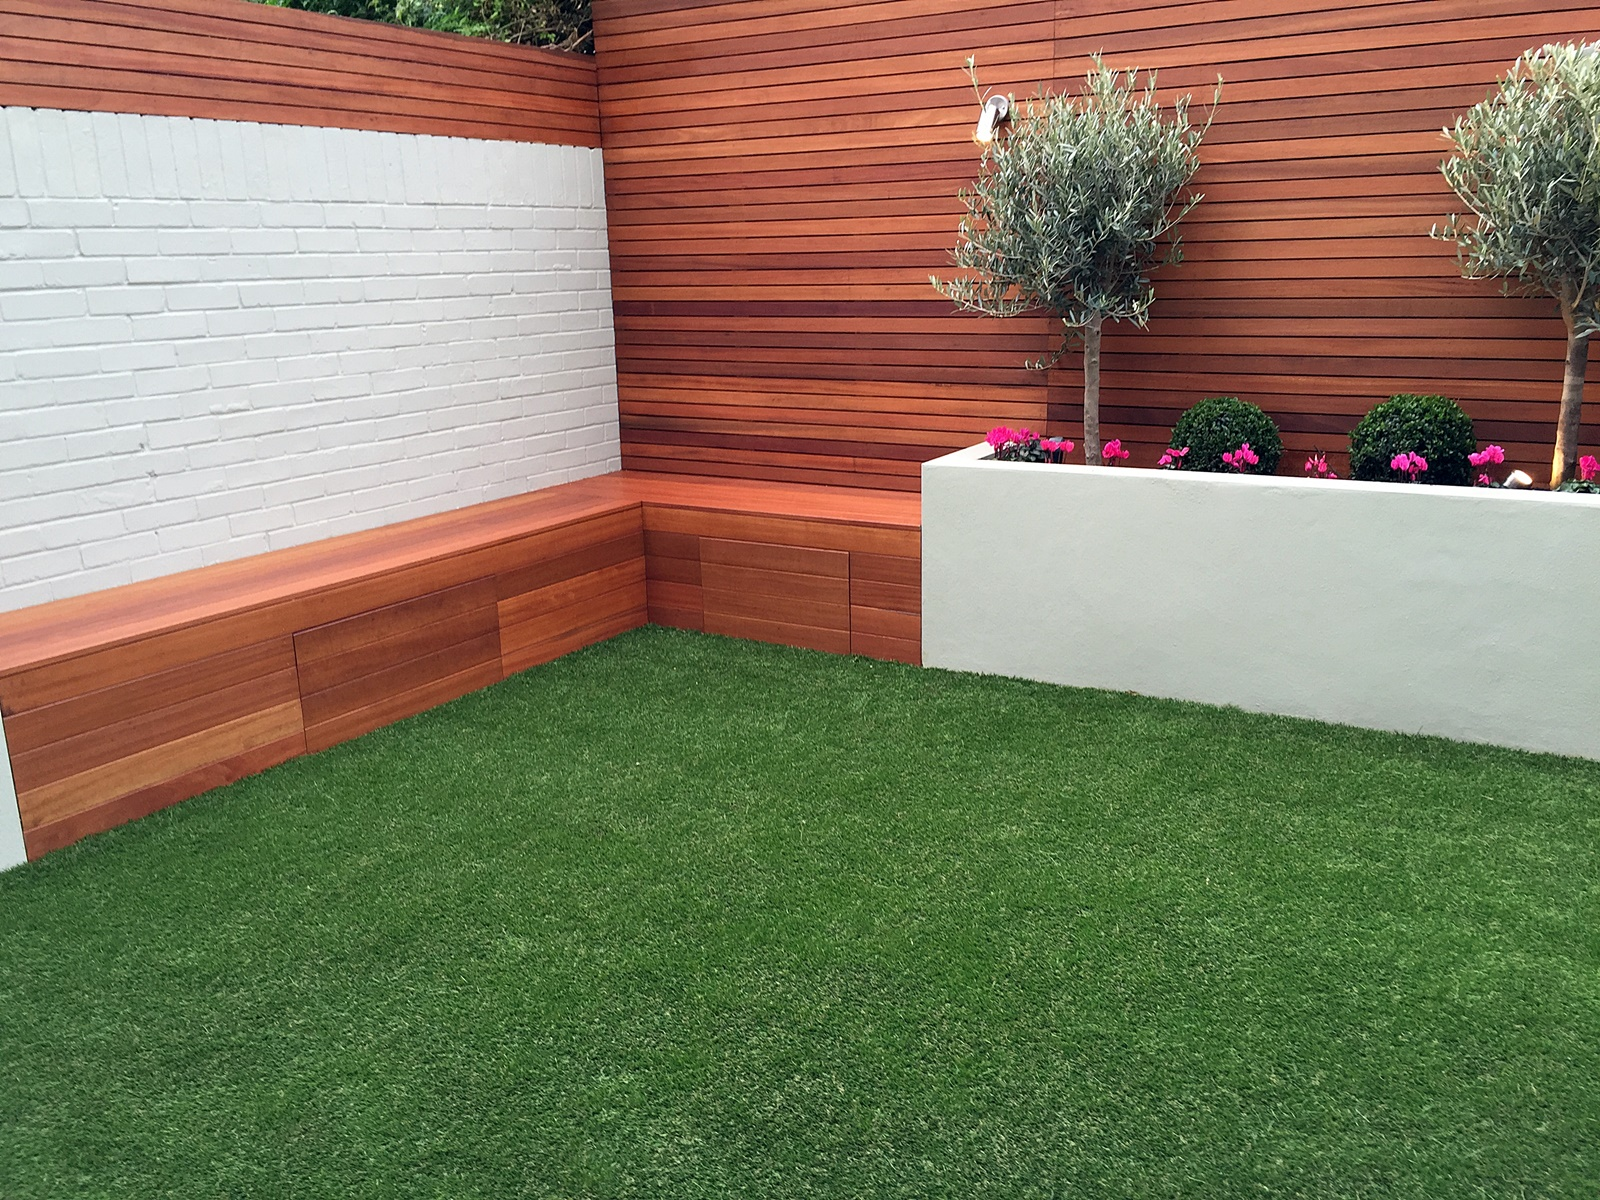 Simple modern court yard garden designer battersea fulham for Home garden design uk